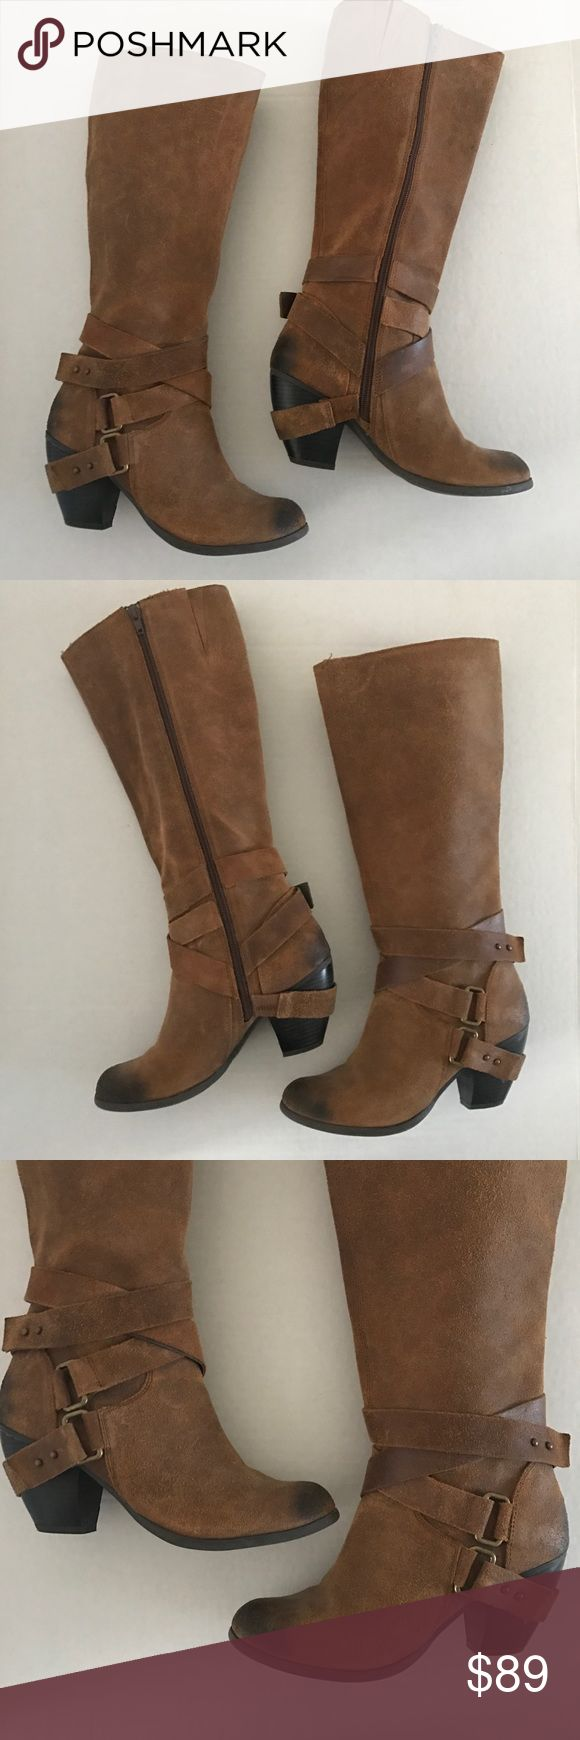 Fergie 'Legend' distressed, suede tall boots These Fergie boots are amazing and go with everything! Wear with denim or dress it up with a dress and a cardigan. These boots were only worn twice and are in excellent condition! Fergie Shoes Heeled Boots